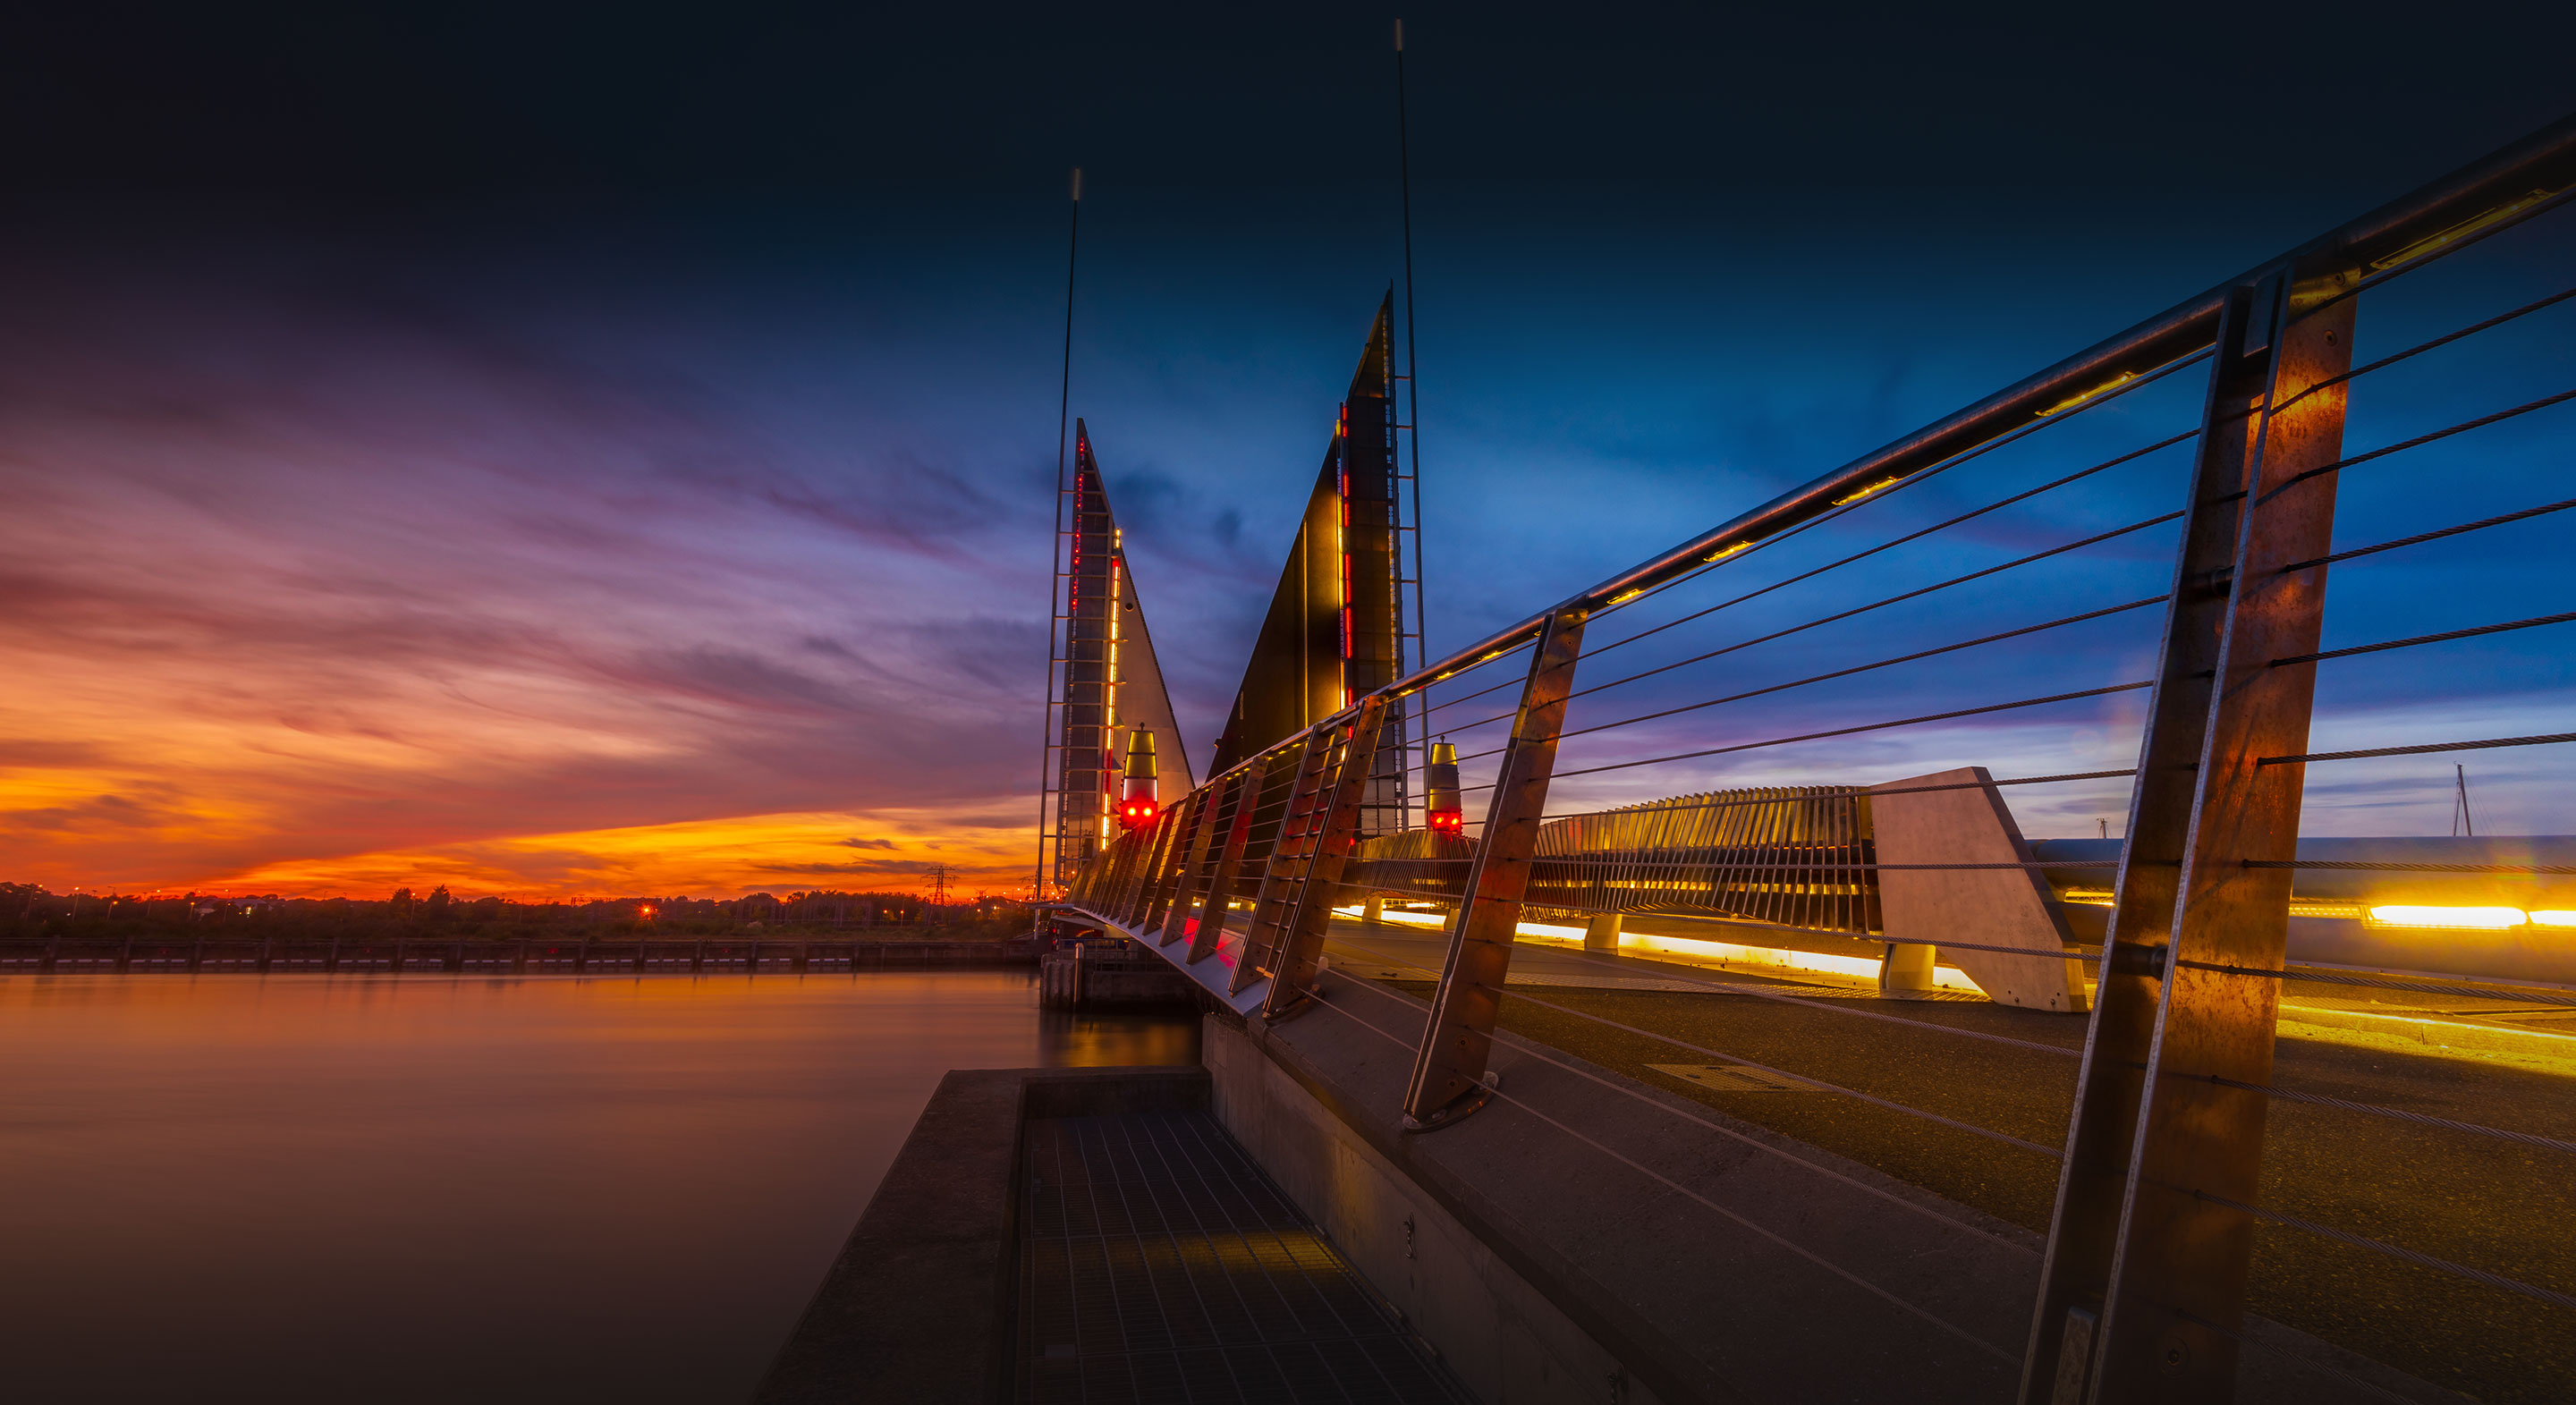 Architectural Lighting for Bridges - LTP Integration